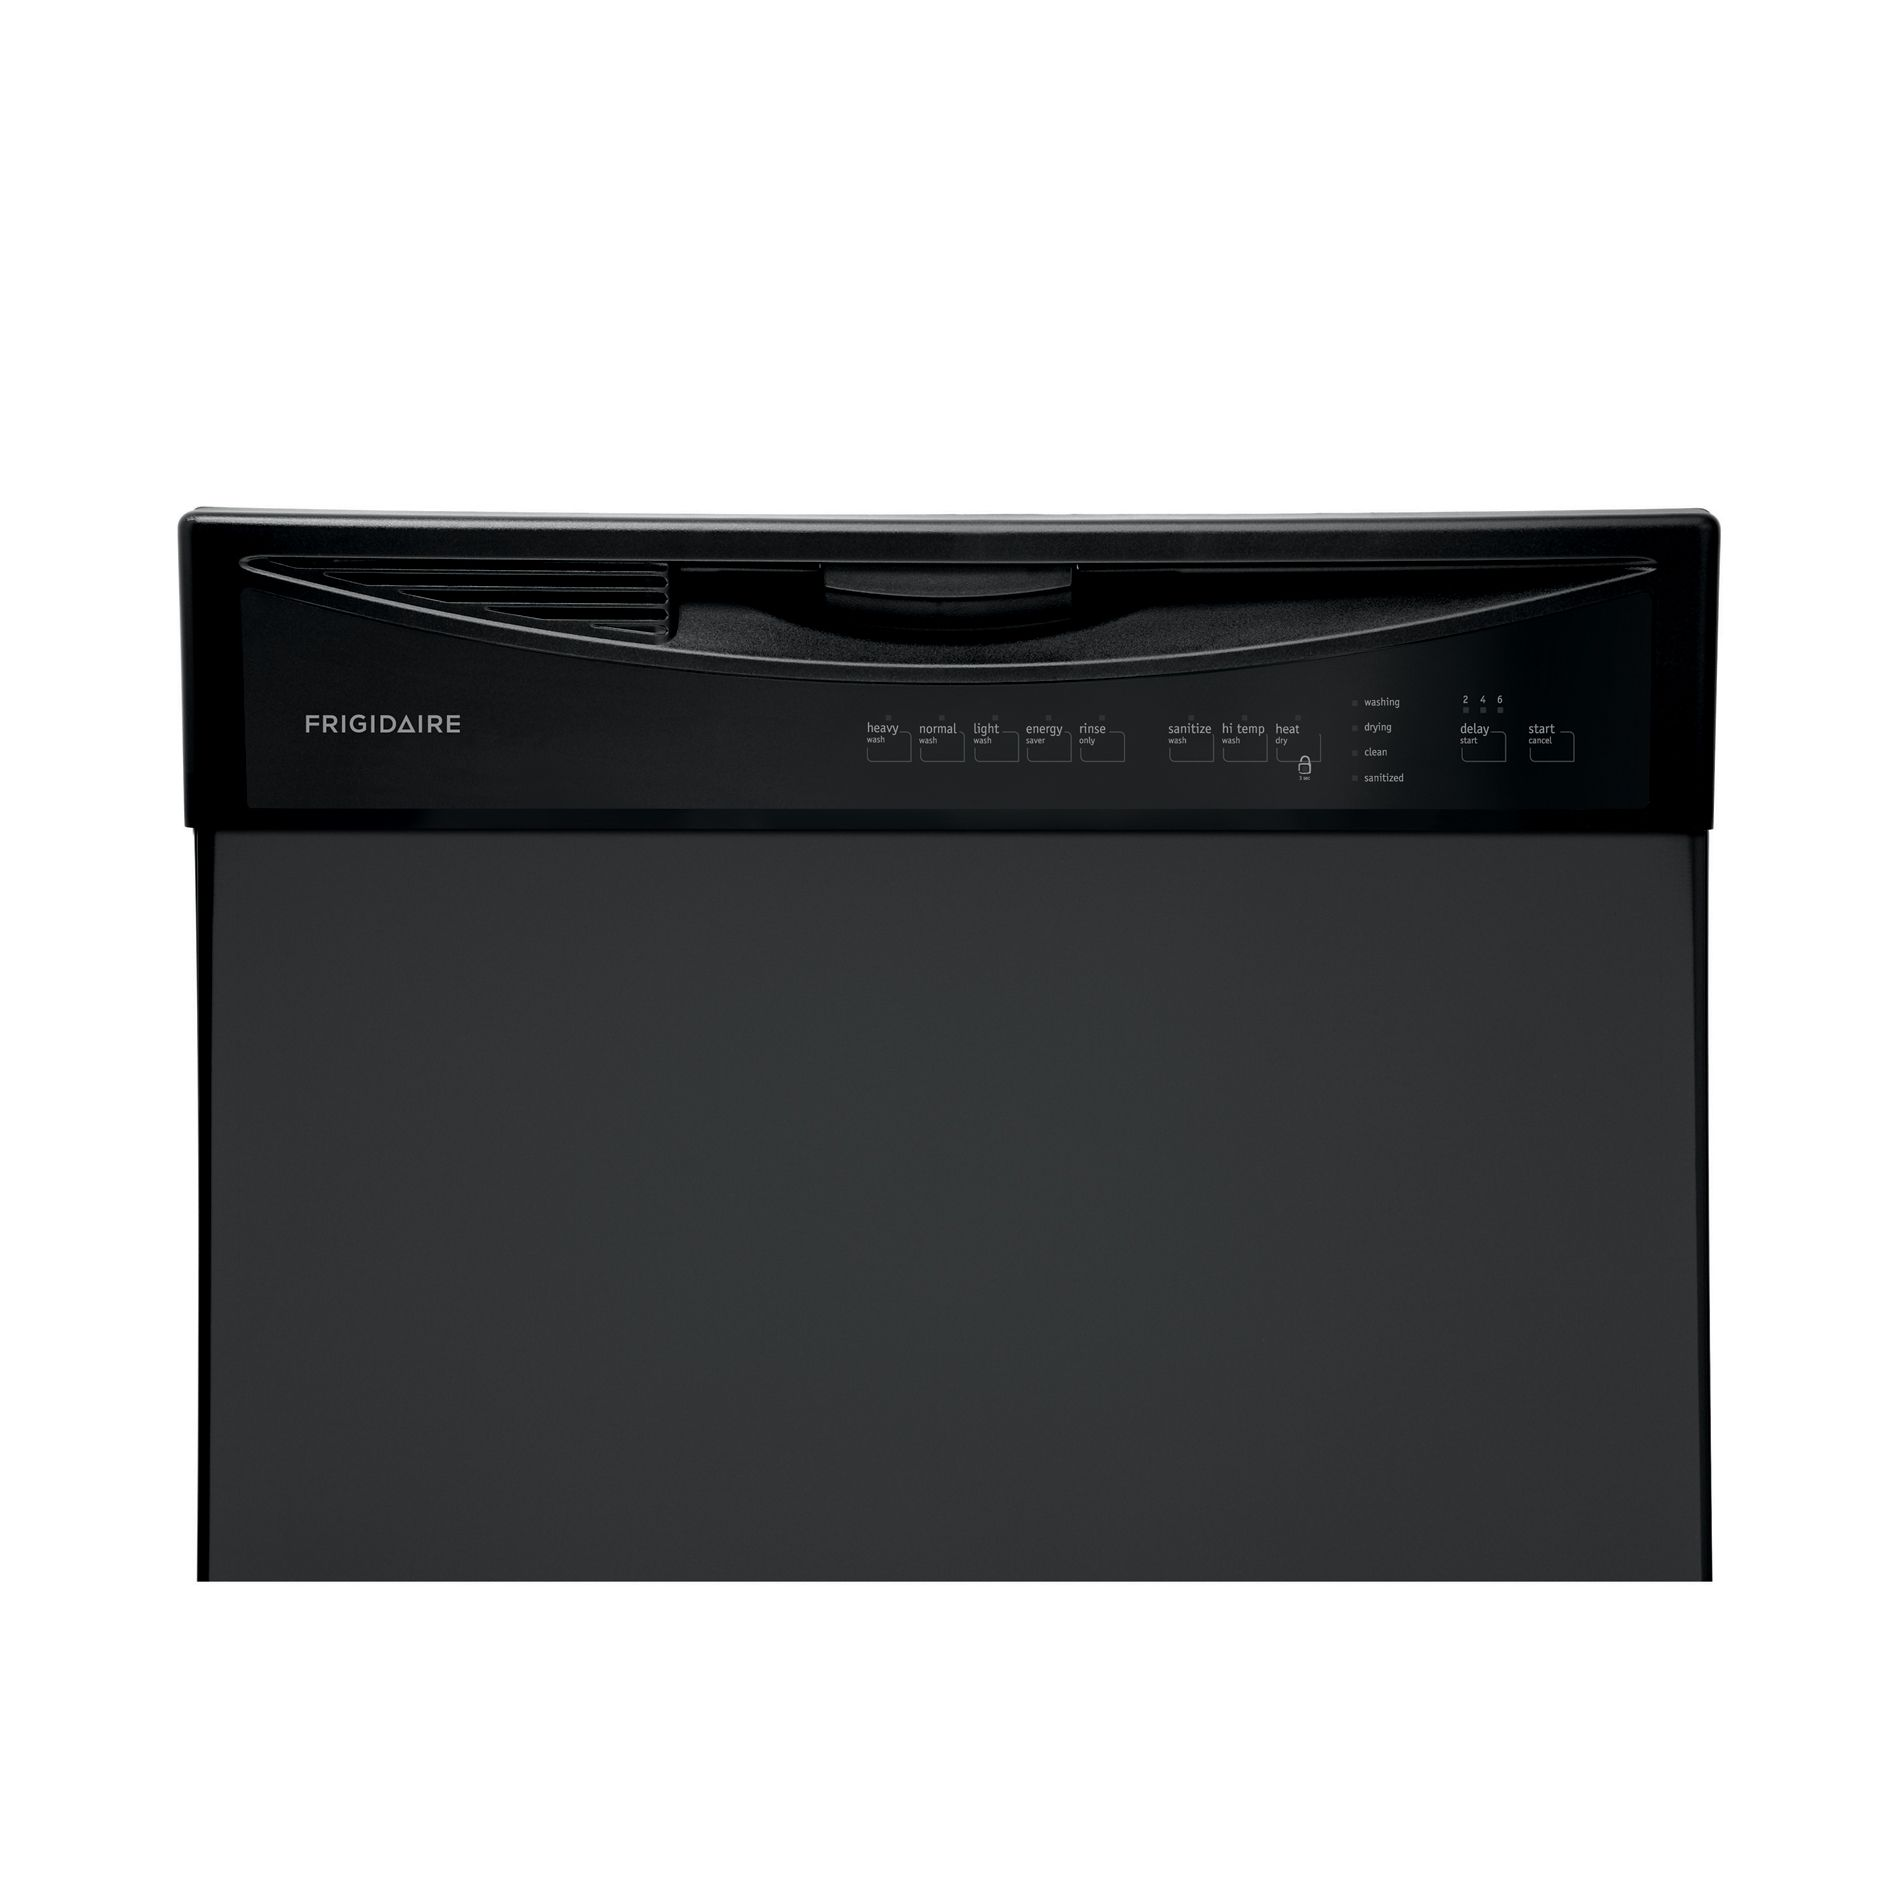 "Frigidaire FFBD2411NB 24"" Built-In Dishwasher - Black"